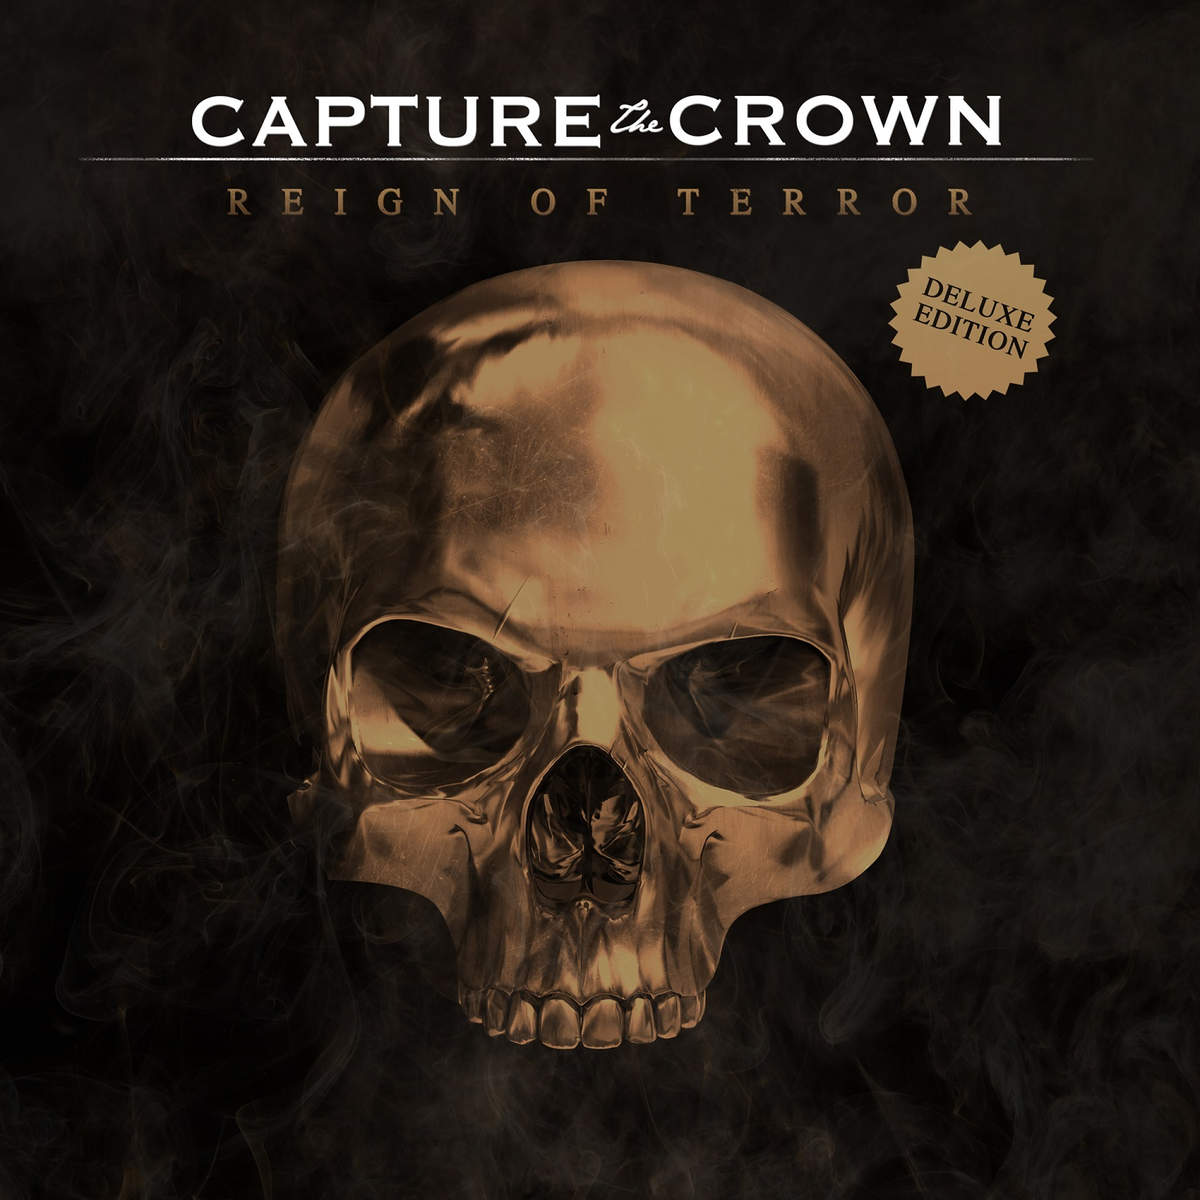 Capture the Crown - Reign of Terror (Deluxe Edition) (2015)